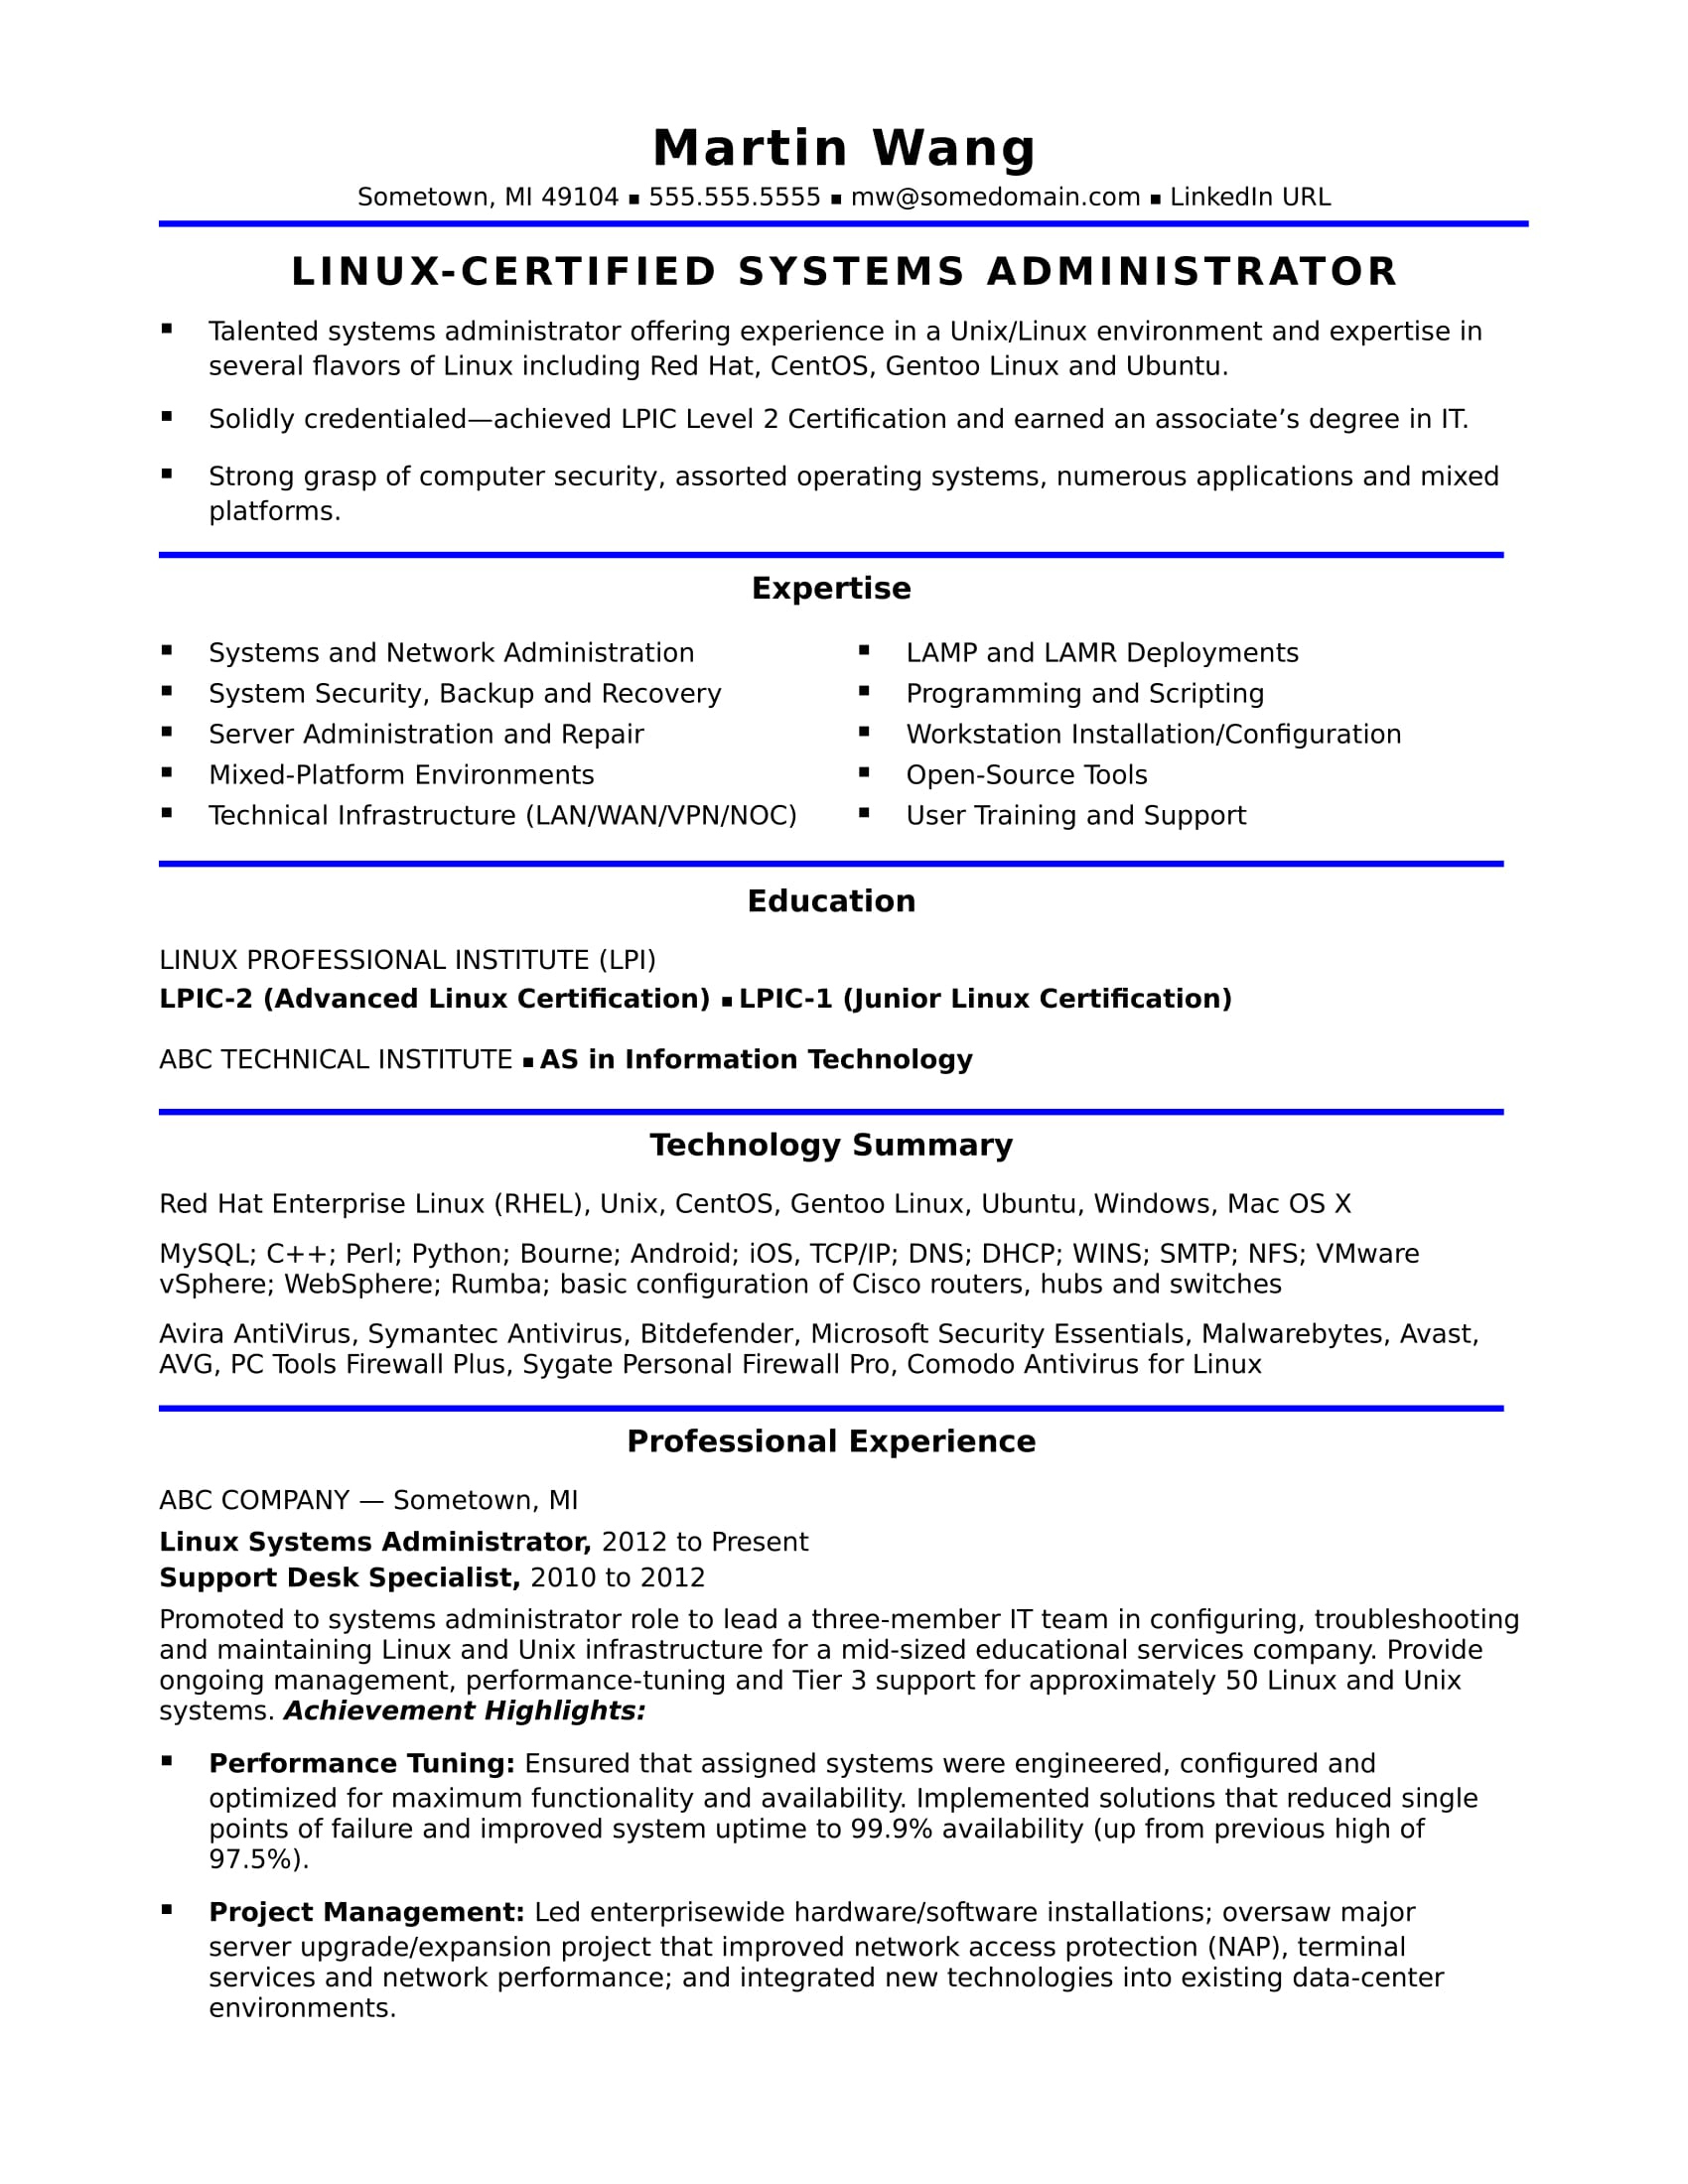 sample resume for a midlevel systems administrator - Linux Admin Resume